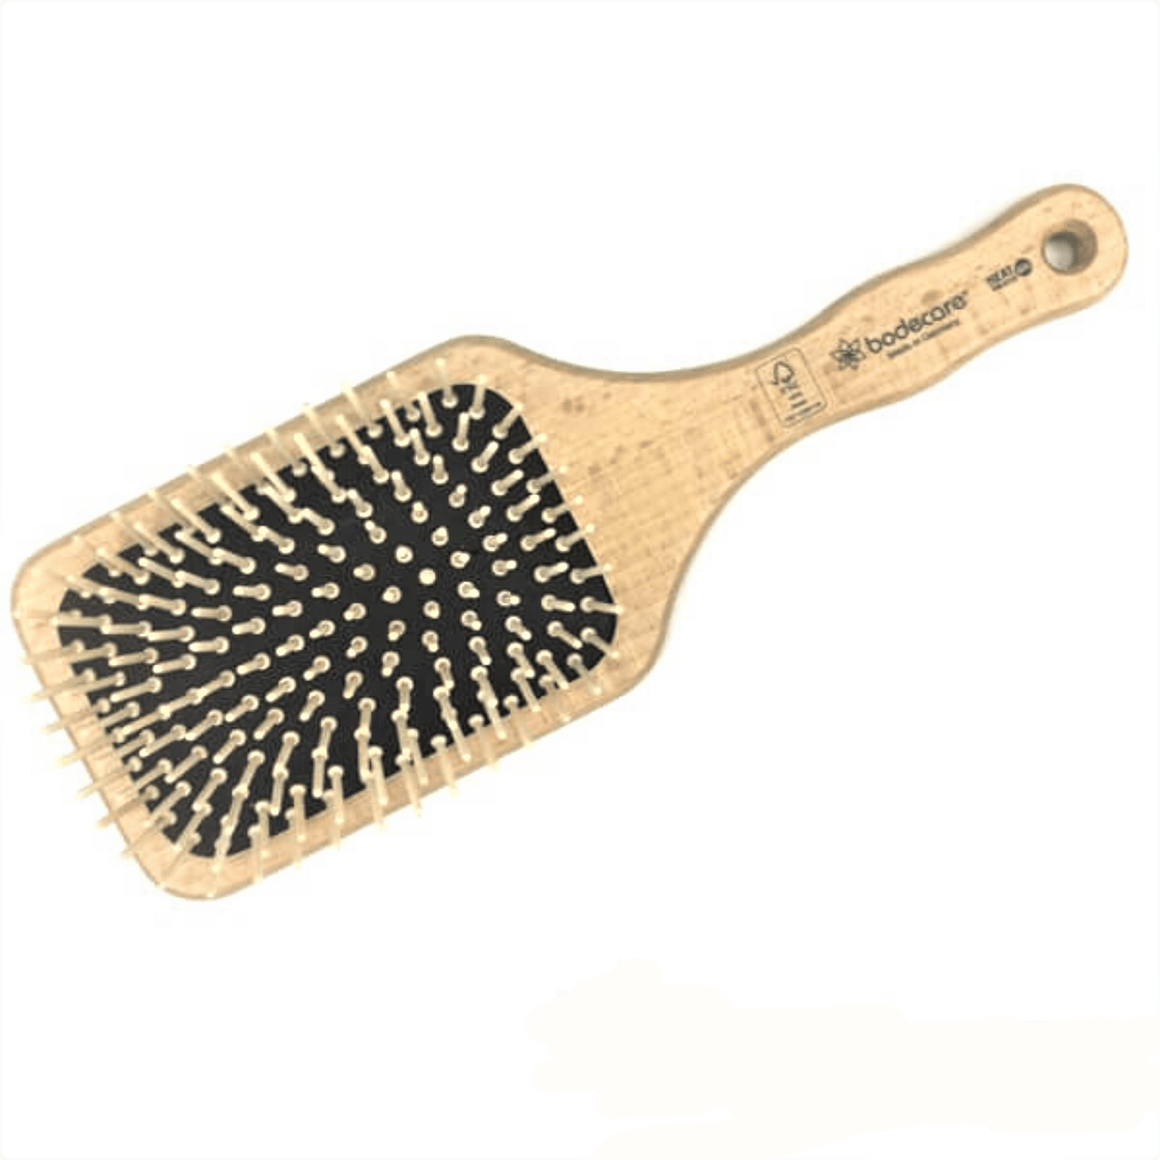 WIDE PADDLE SCALP MASSAGE HAIR BRUSH / MADE IN GERMANY